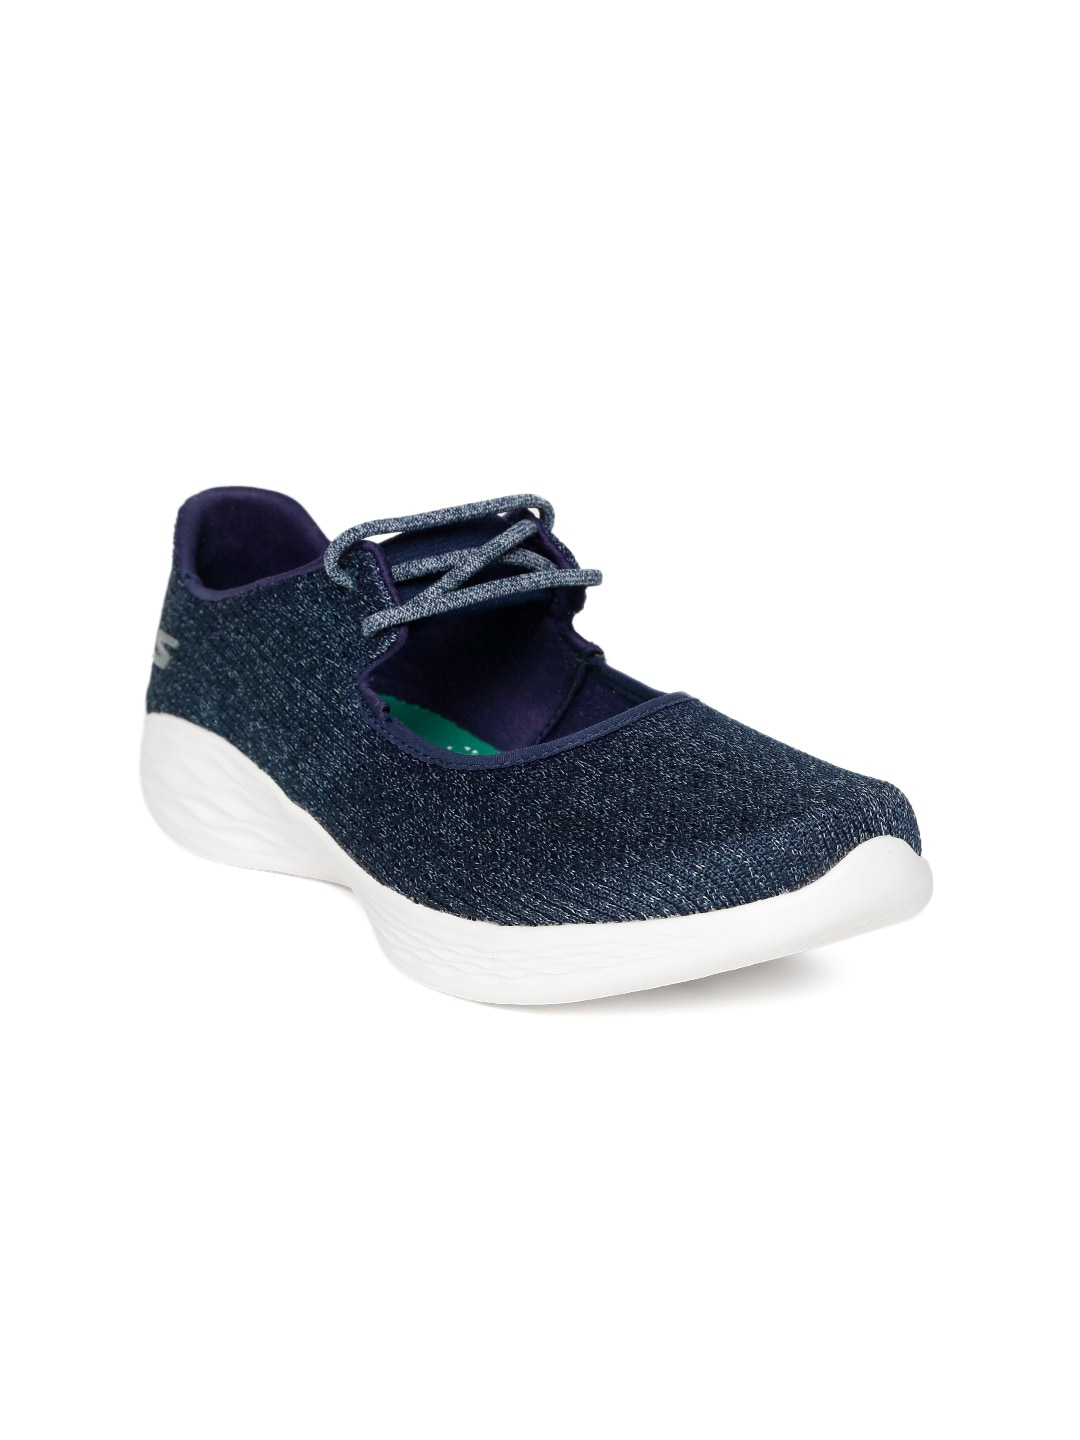 b88540b74f81 Casual Shoes For Women - Buy Women s Casual Shoes Online from Myntra